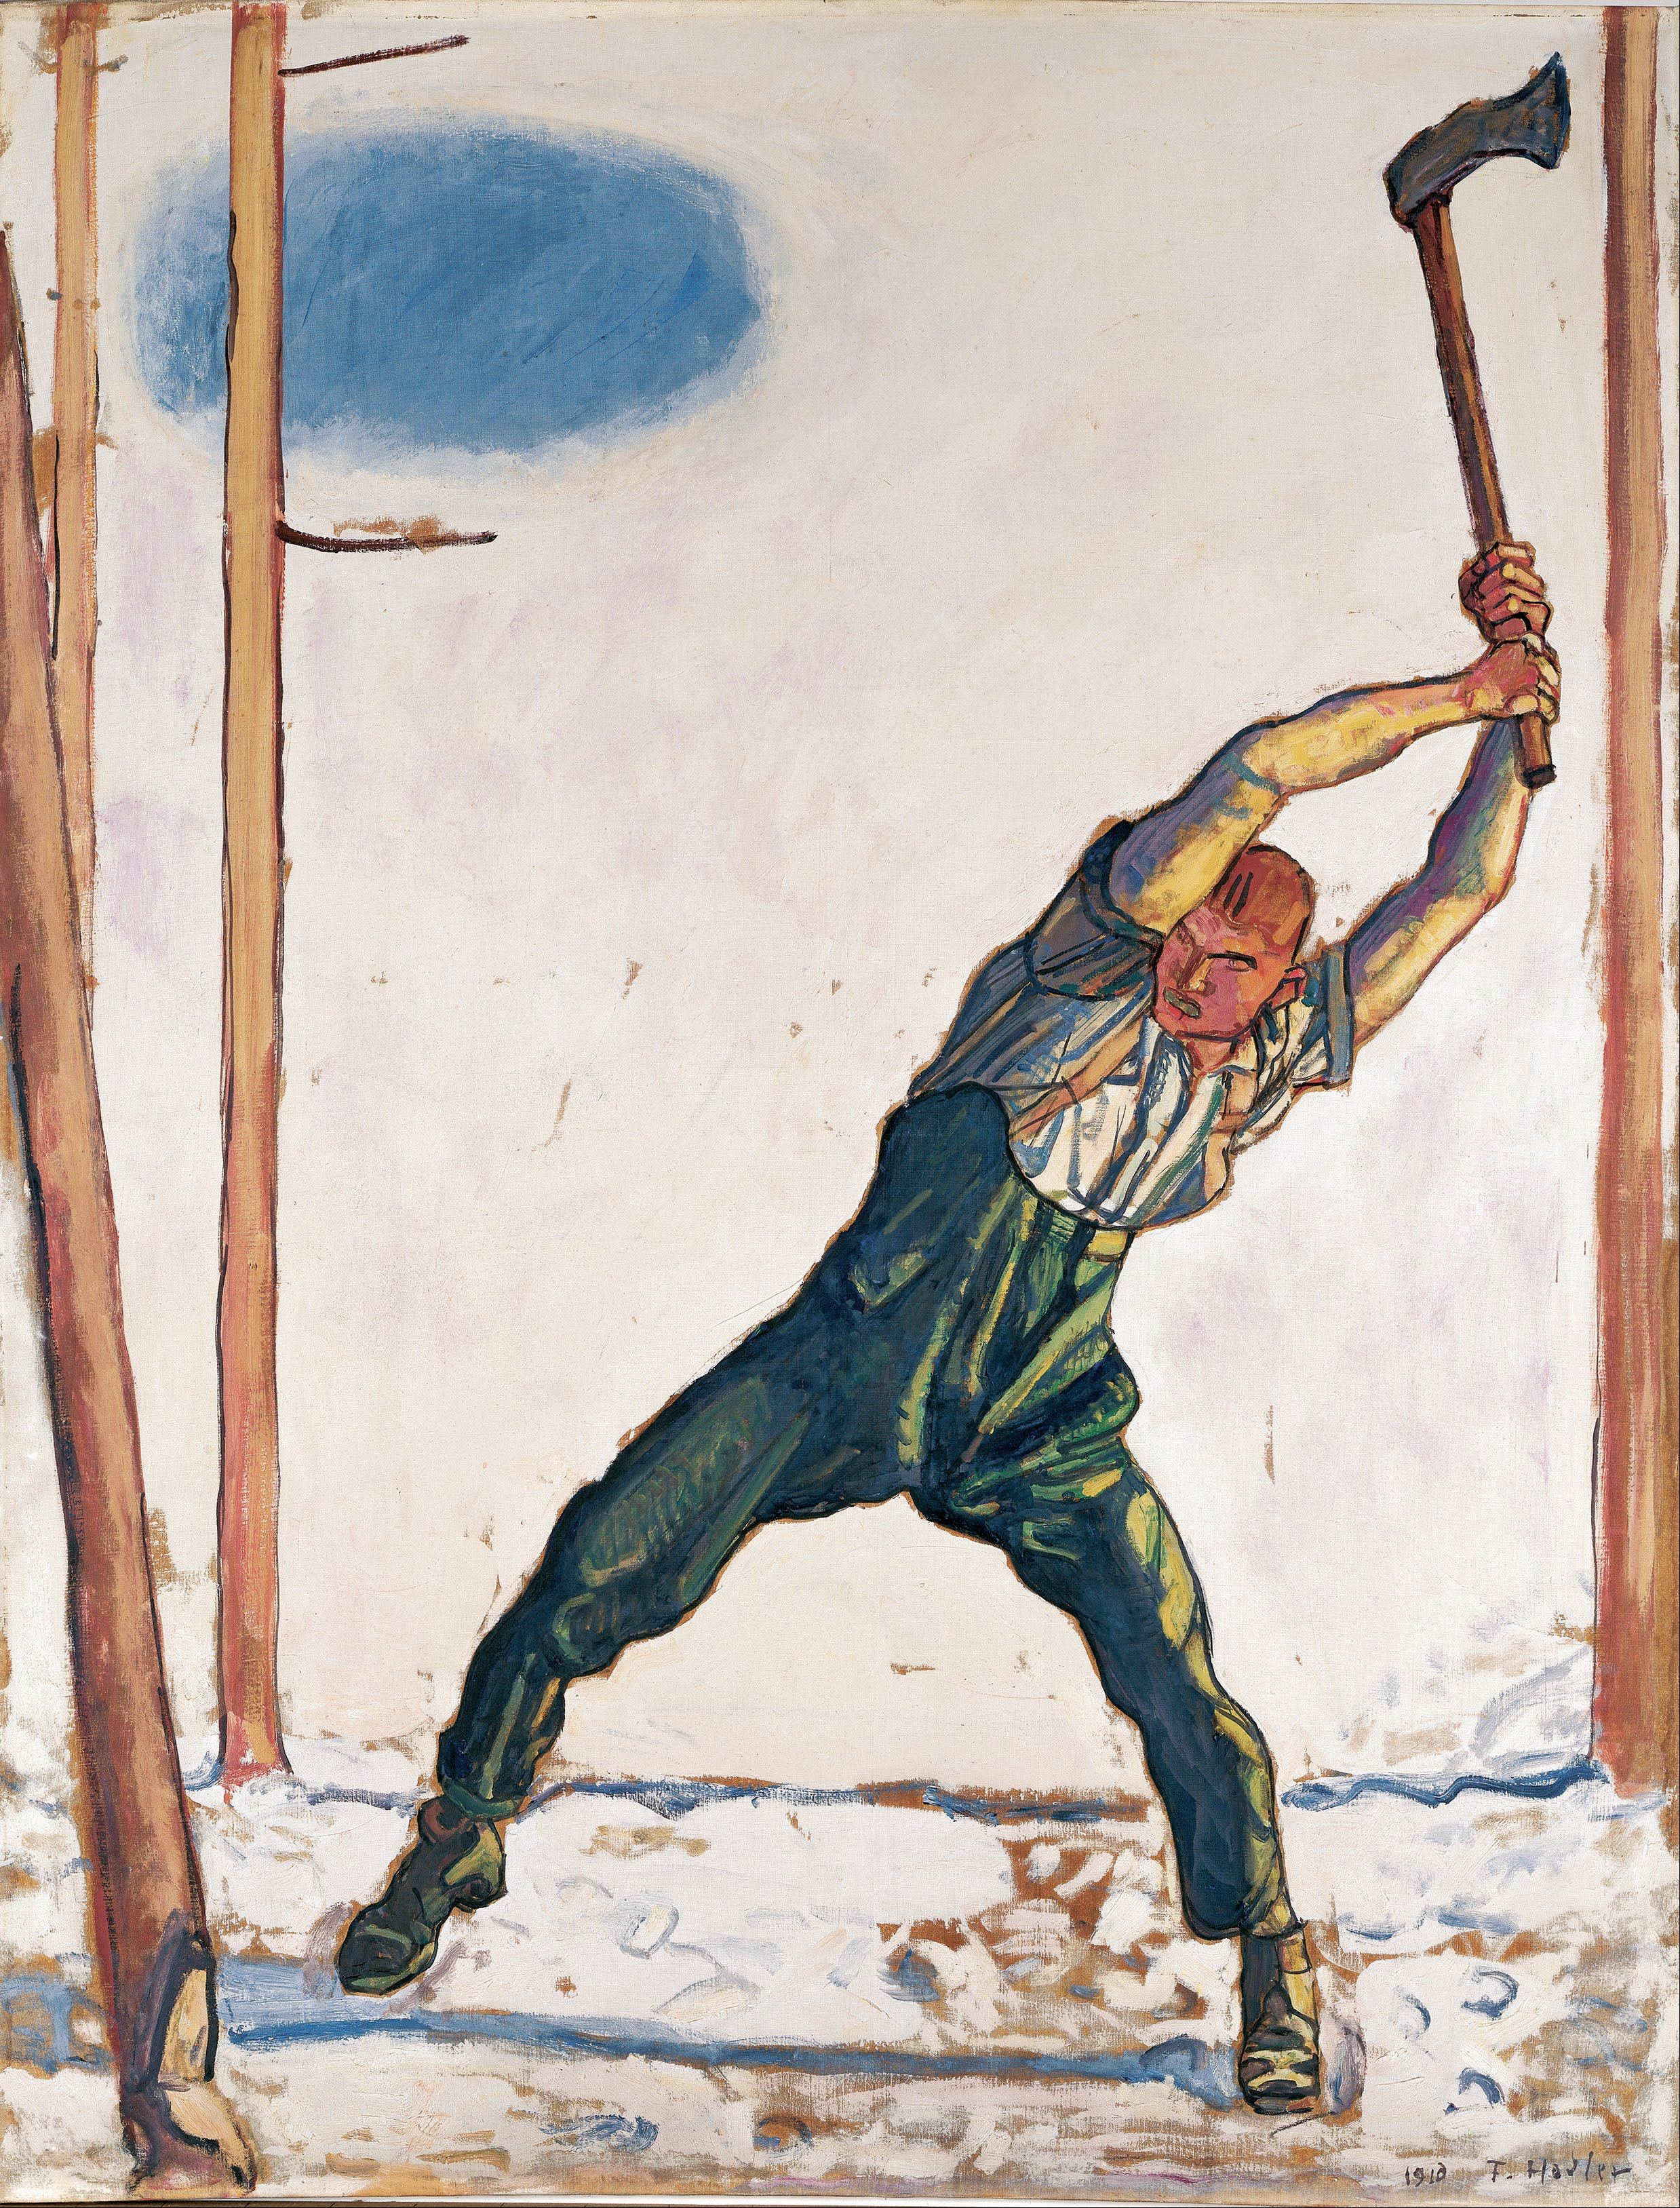 Ferdinand_Hodler_-_Woodcutter_-_Google_Art_Project.jpg